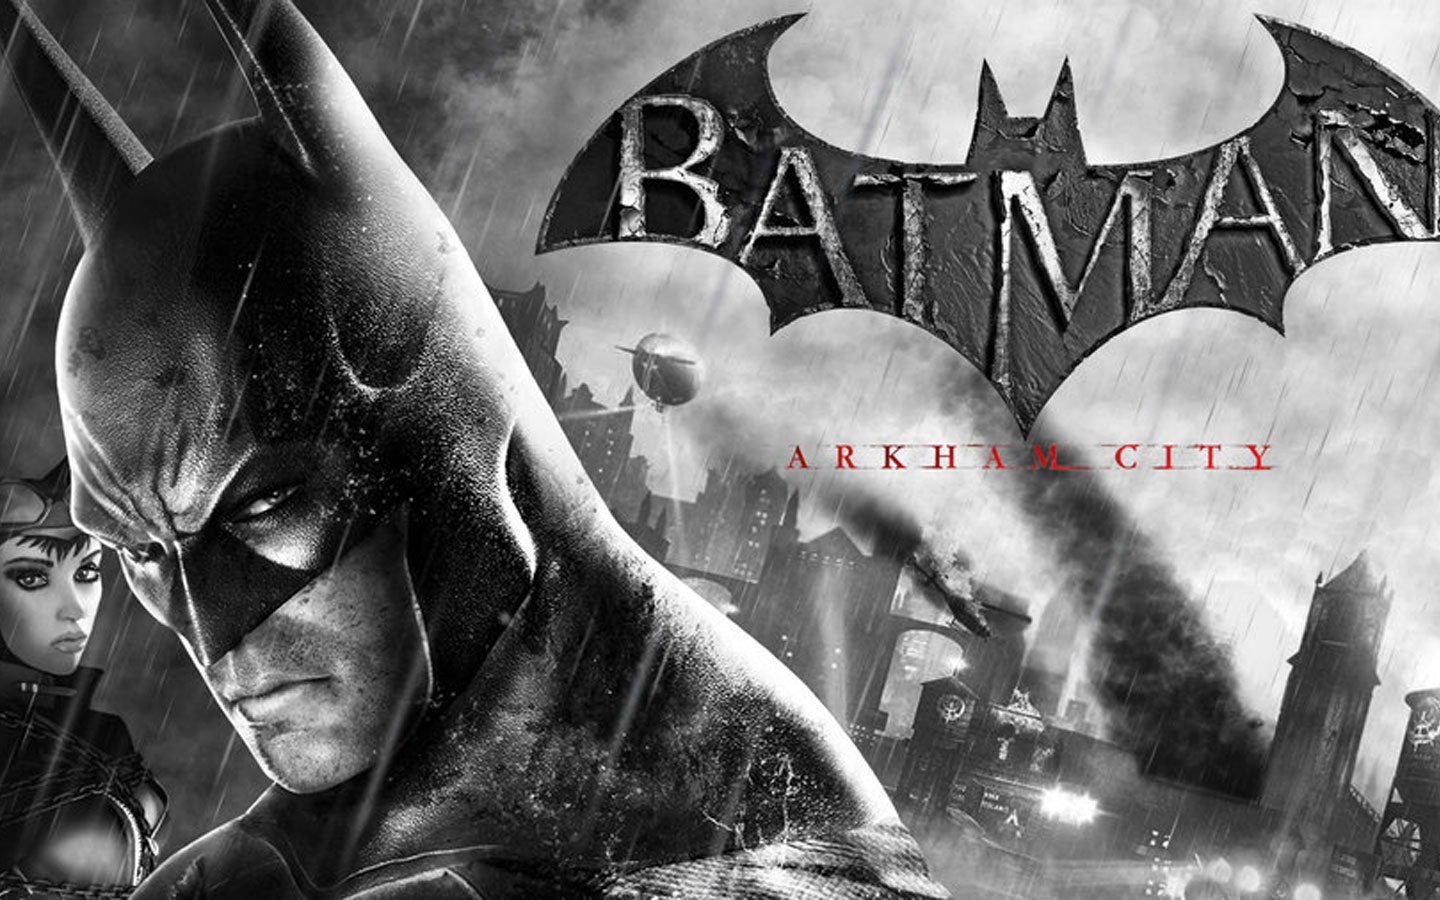 Batman Arkham City Wallpaper Hd 1080p Wallpaper